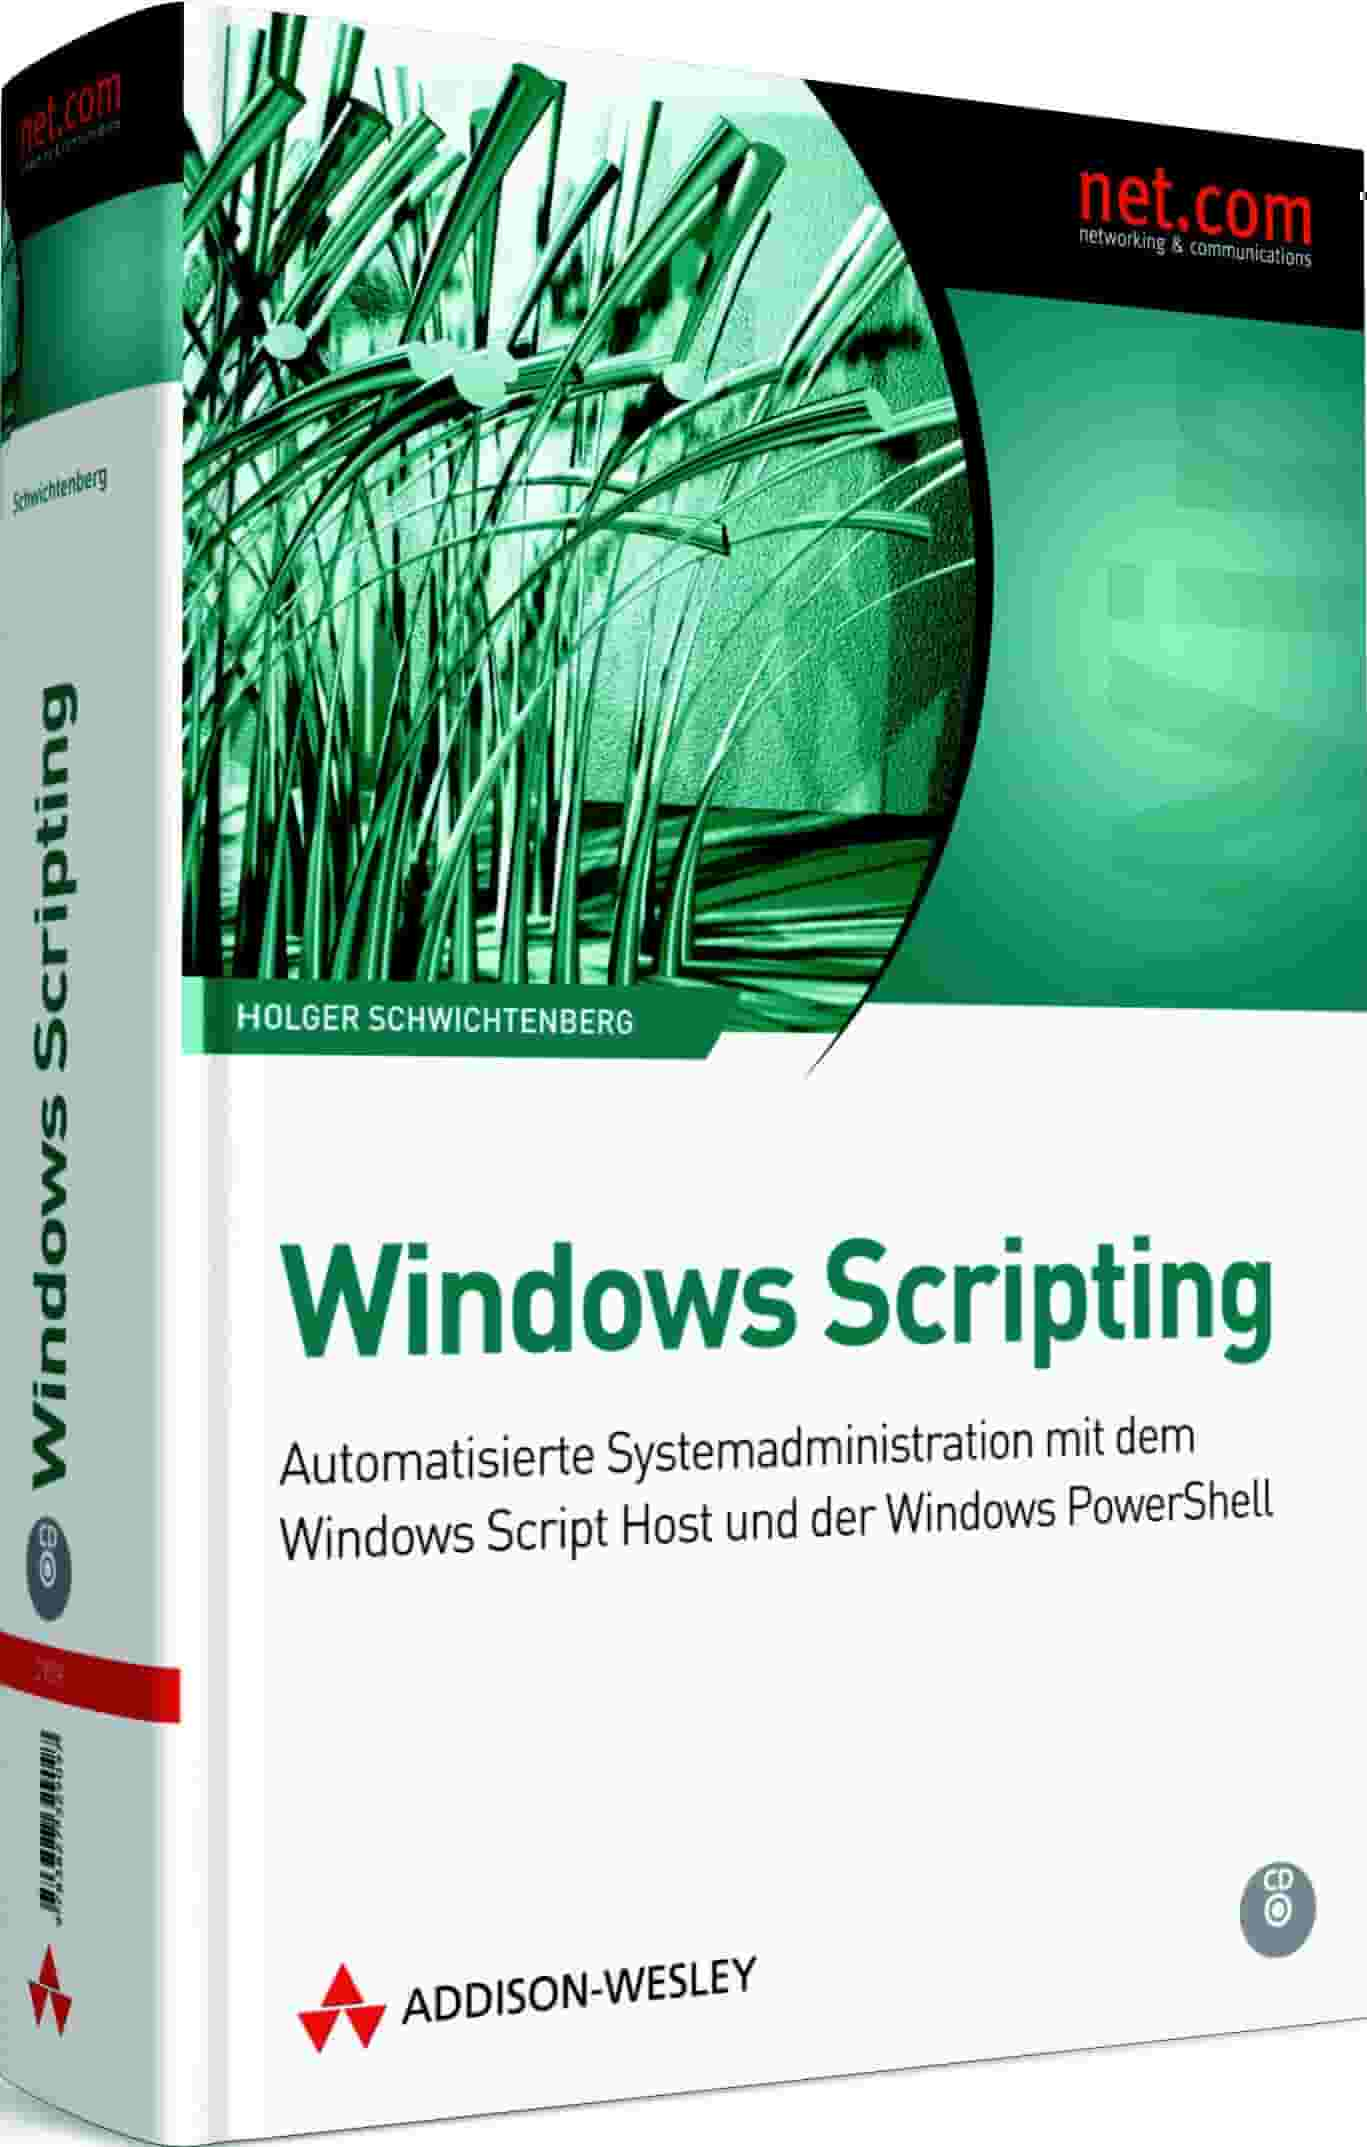 Windows Scripting (Addison-Wesley, 2009)